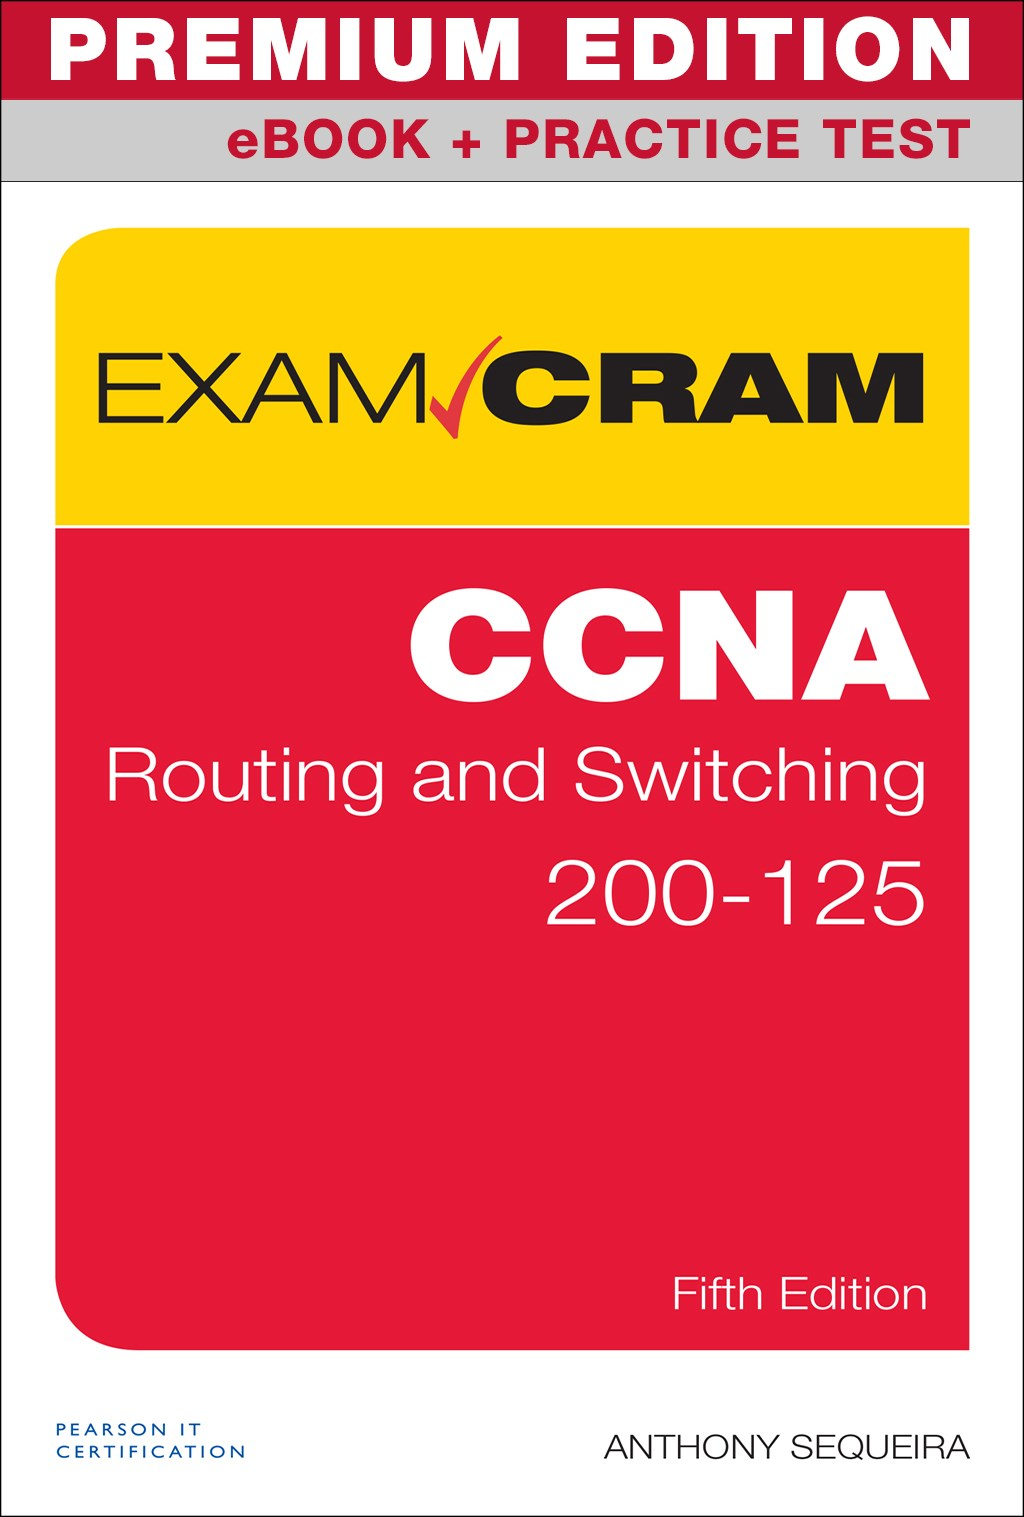 CCNA Routing and Switching 200-125 Exam Cram